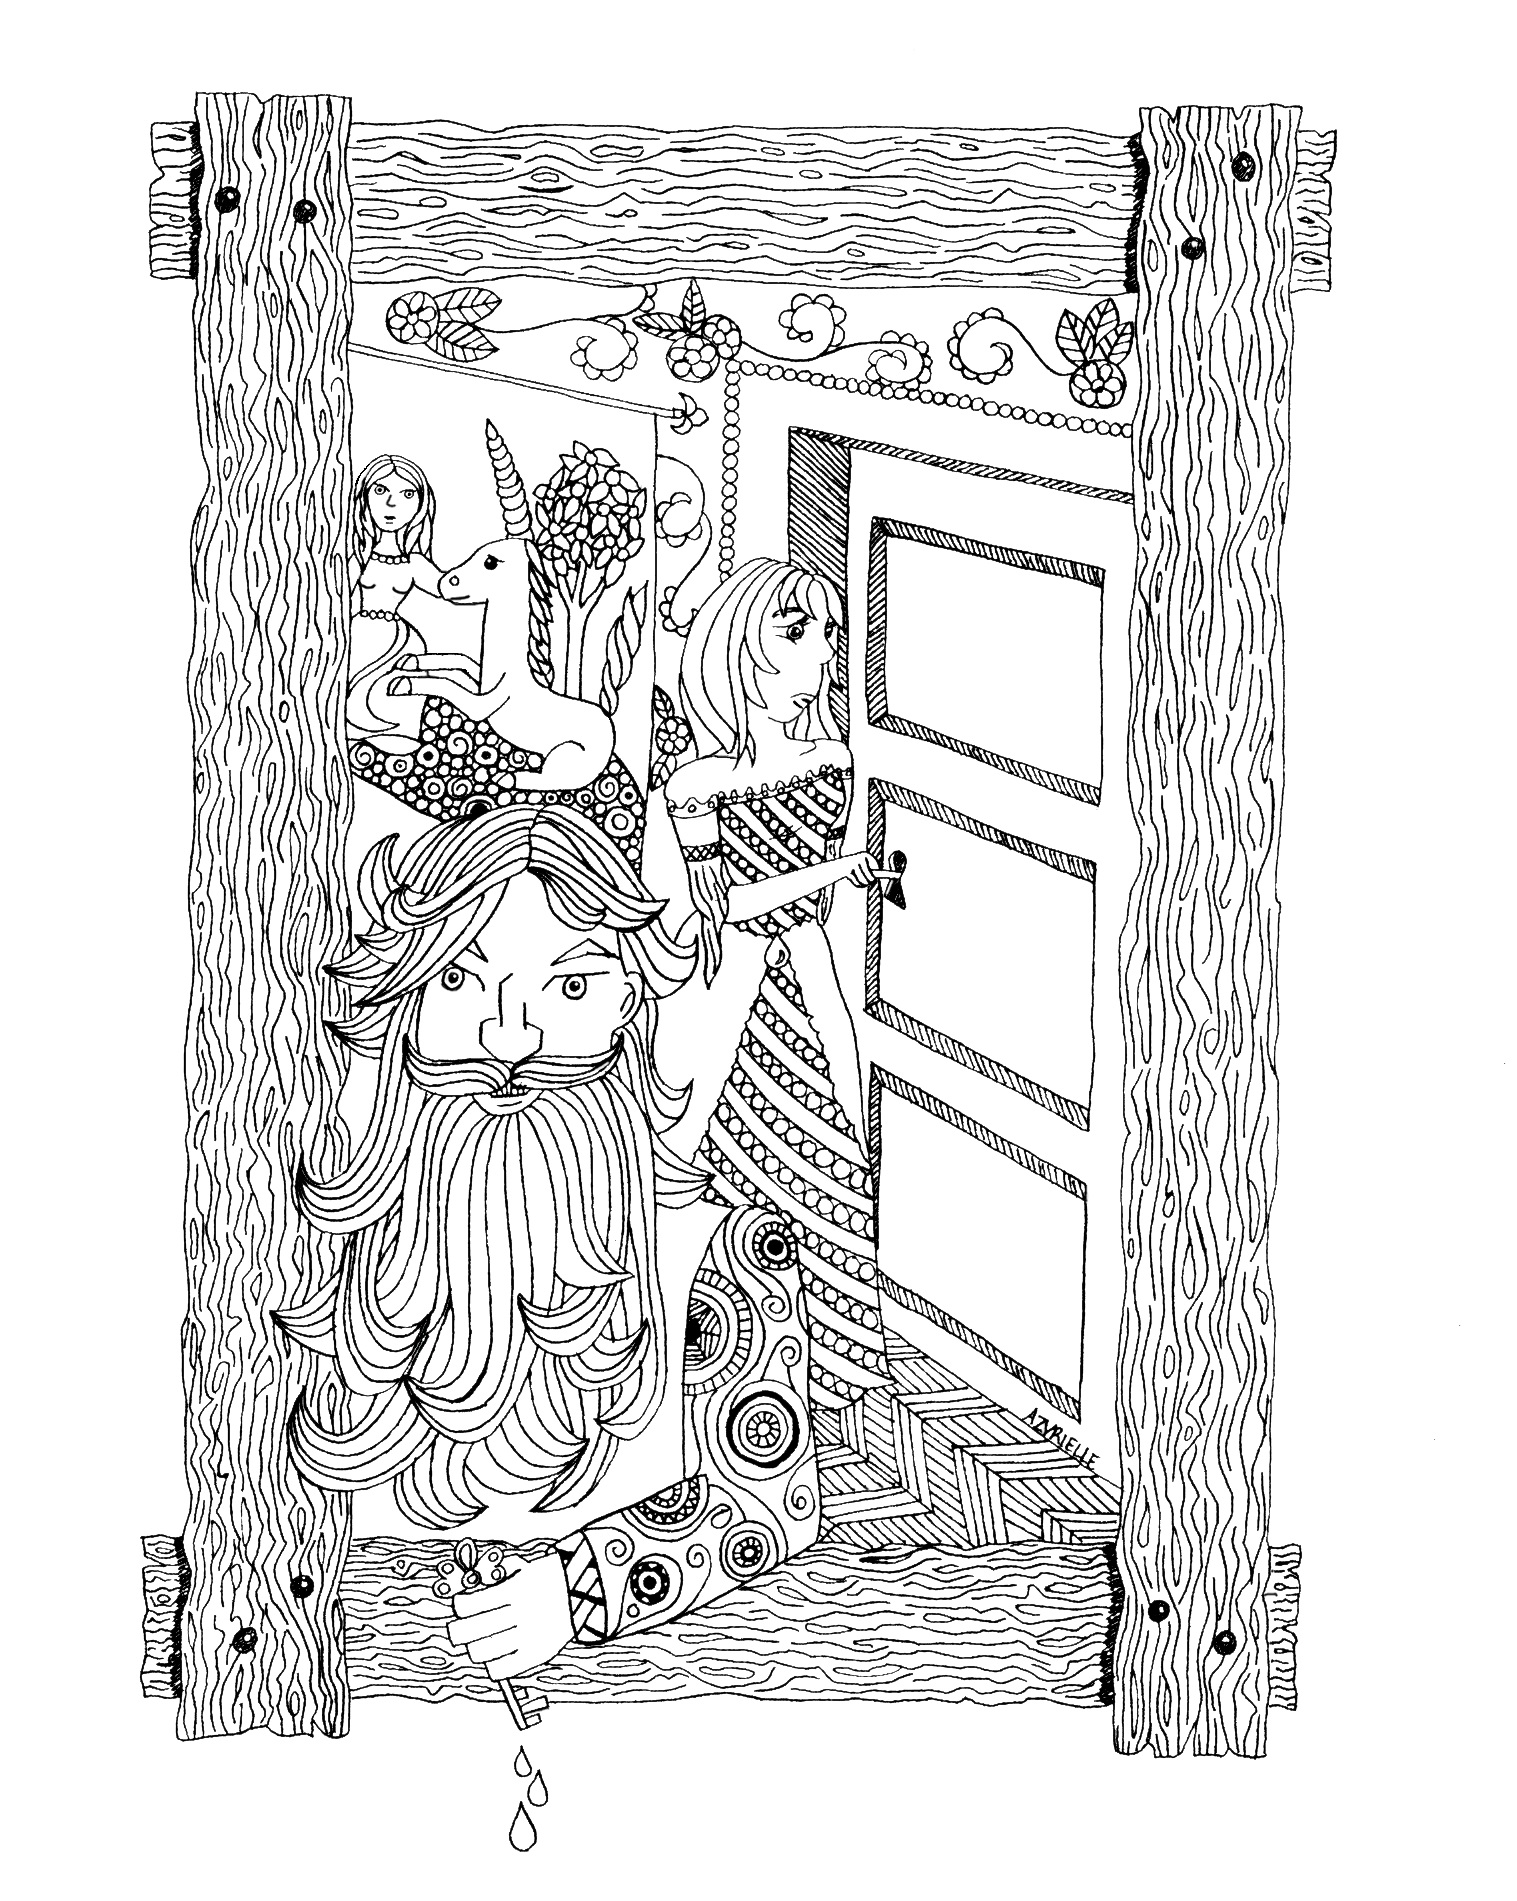 These Charles Perrault tale characters are waiting for colors